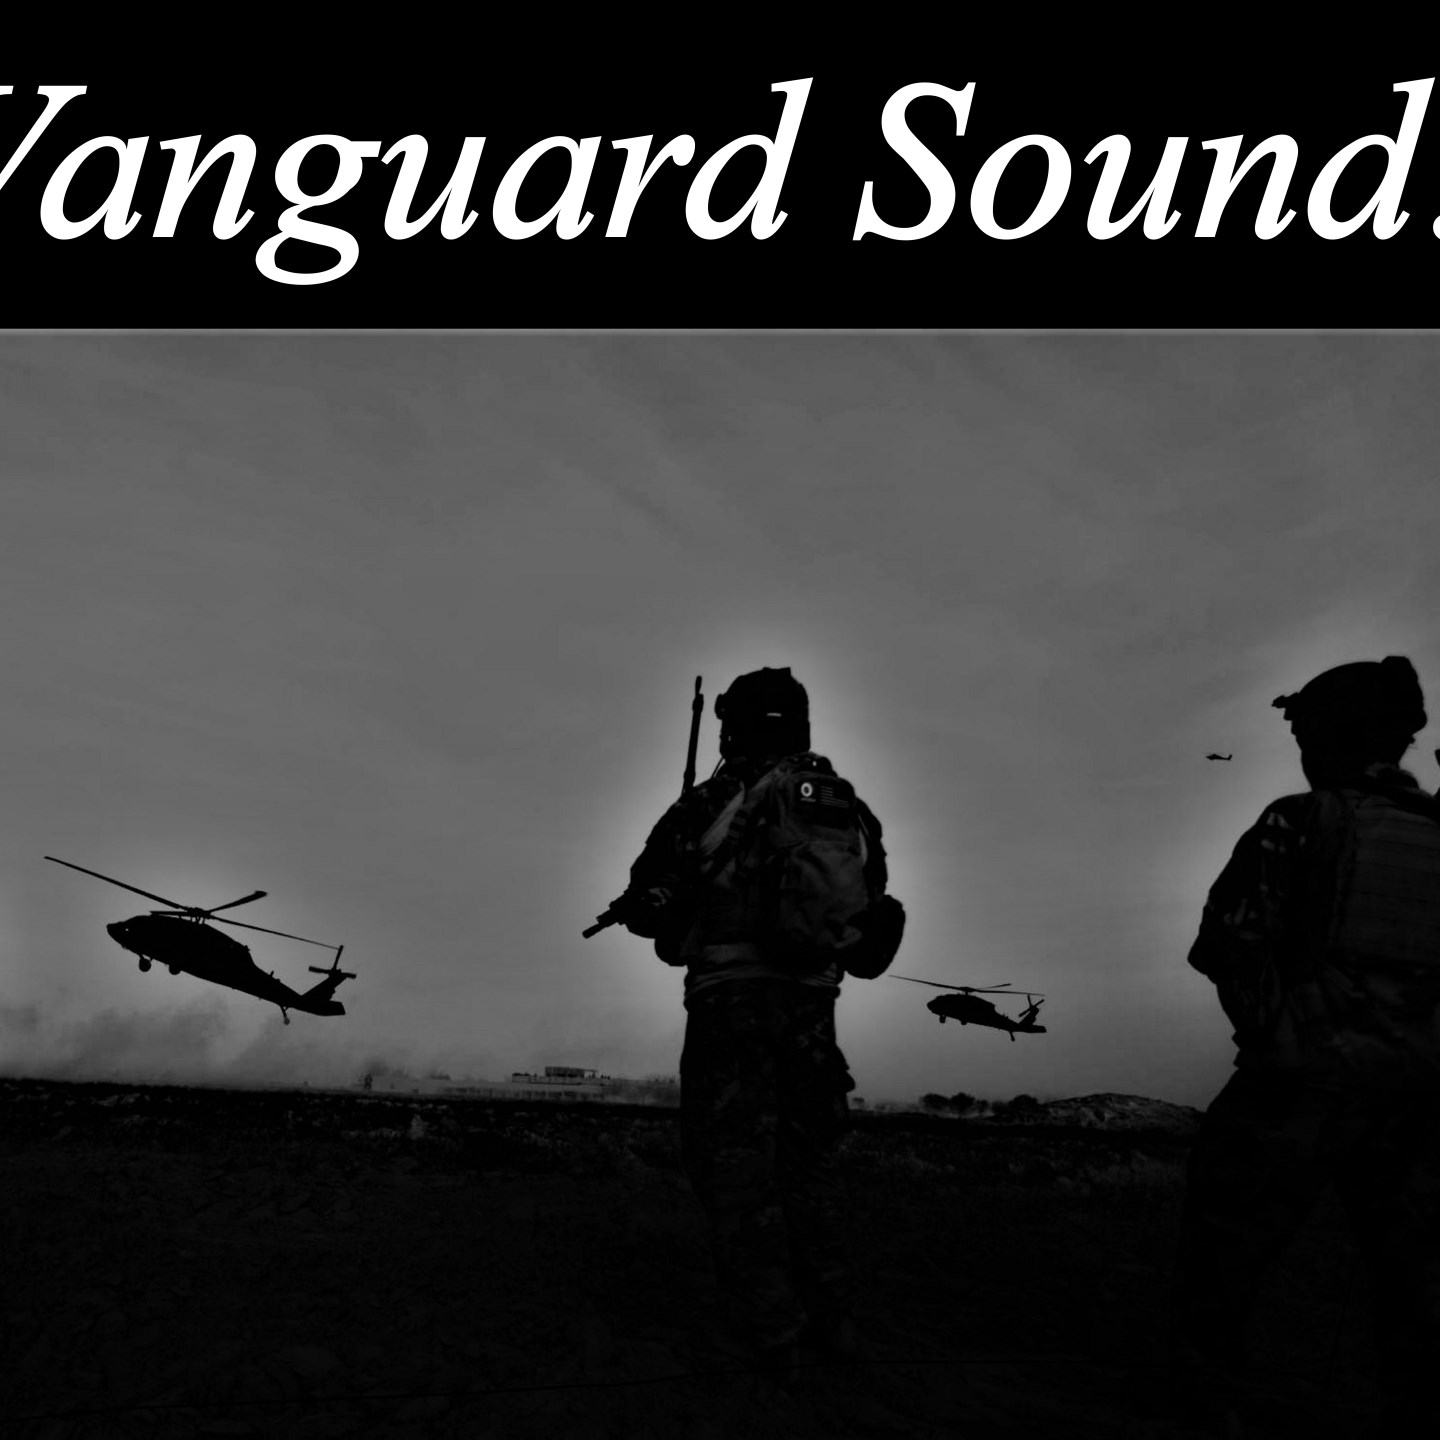 Tracks on Vanguard Sound